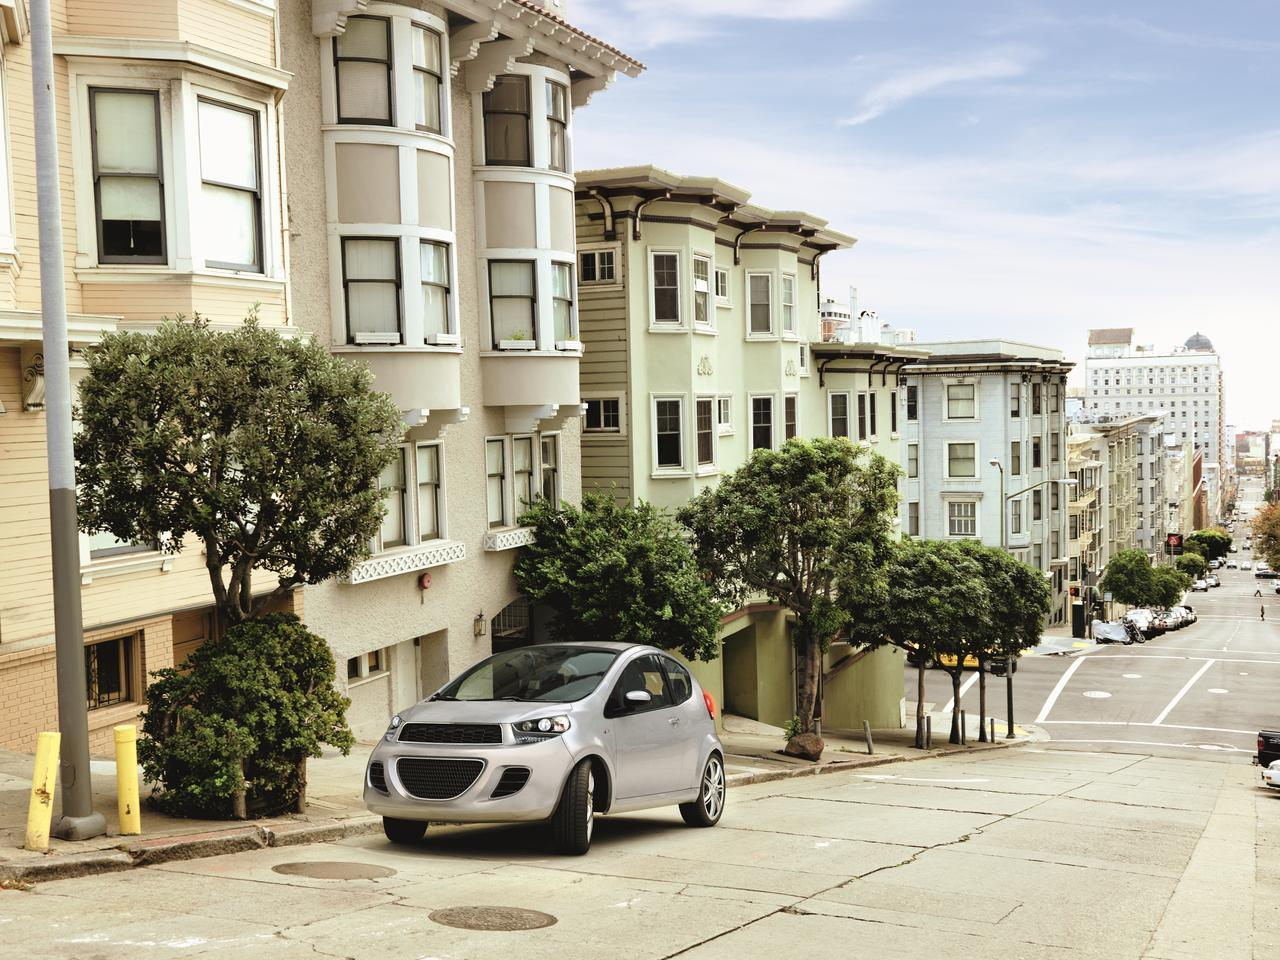 The electric parking brake can assist in hill parking